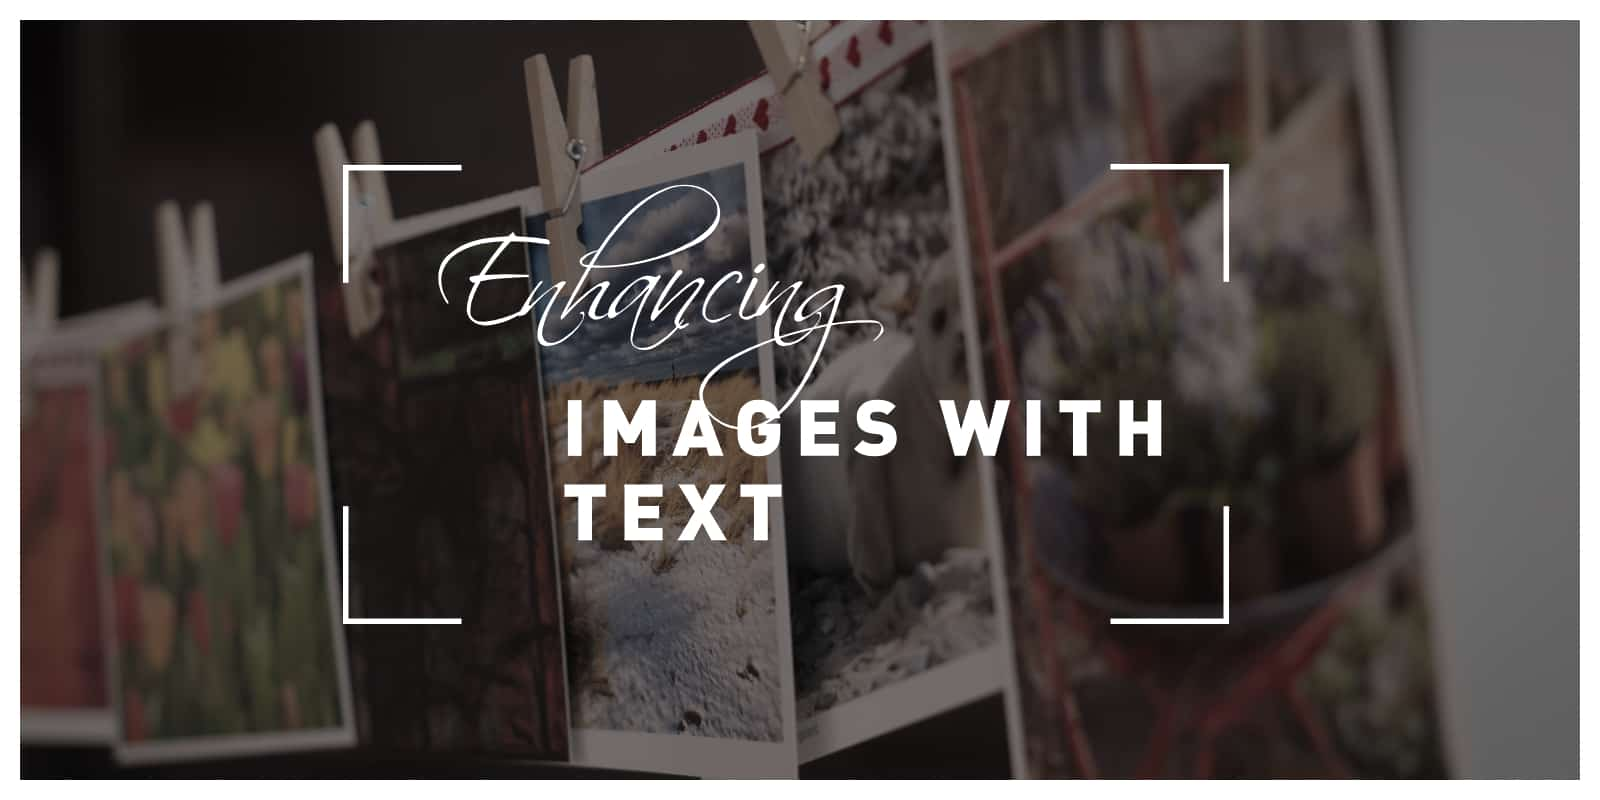 Enhancing images with text